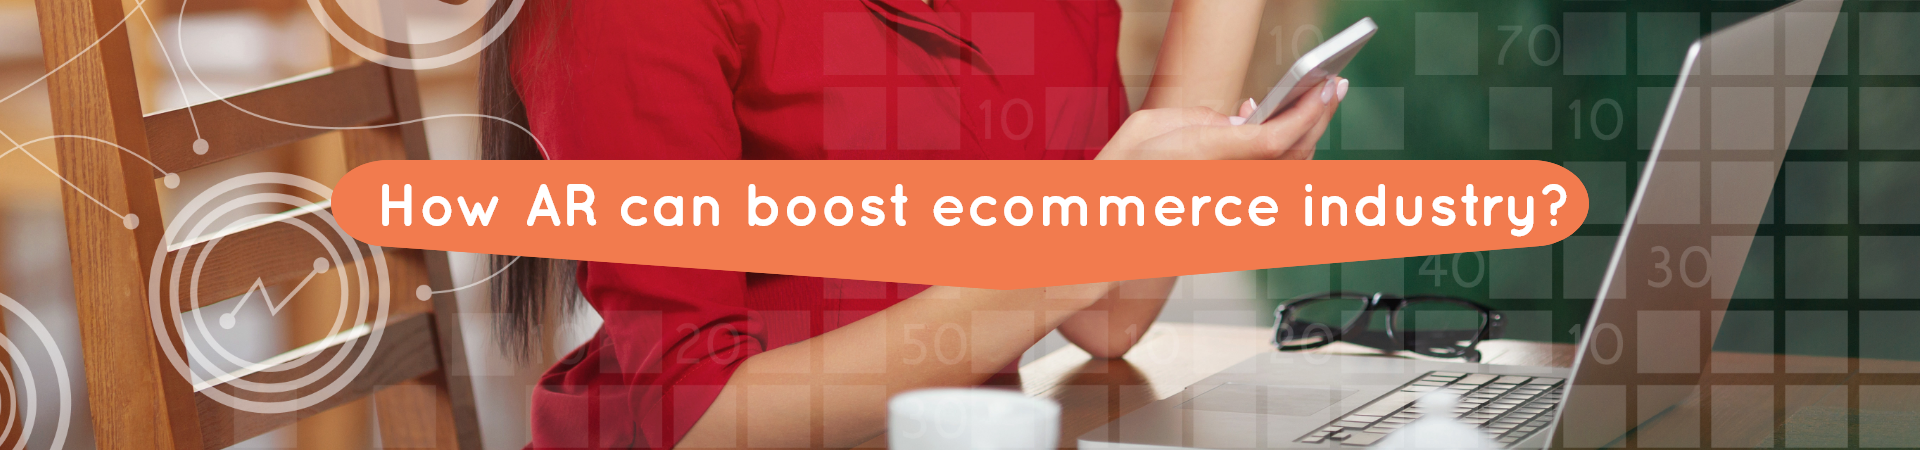 How AR Can Boost Ecommerce Industry? - Image 1